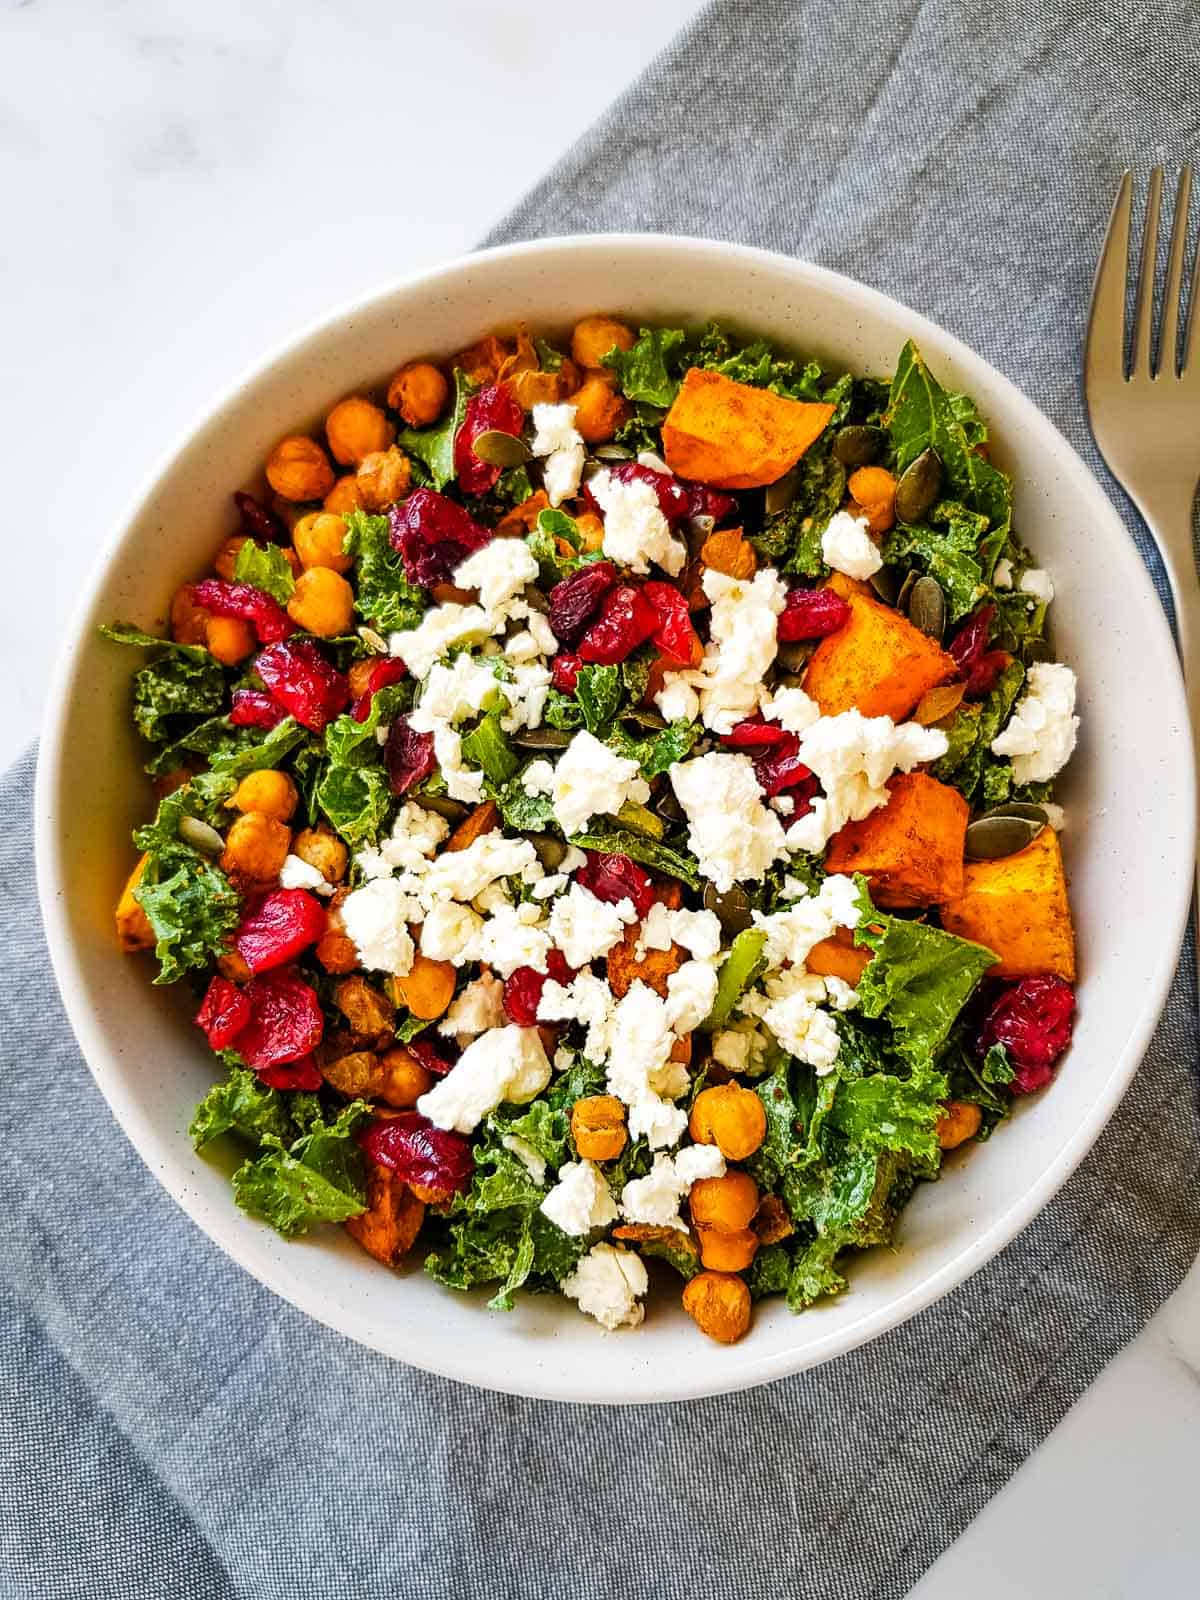 Kale and sweet potato salad with feta cheese and cranberries.